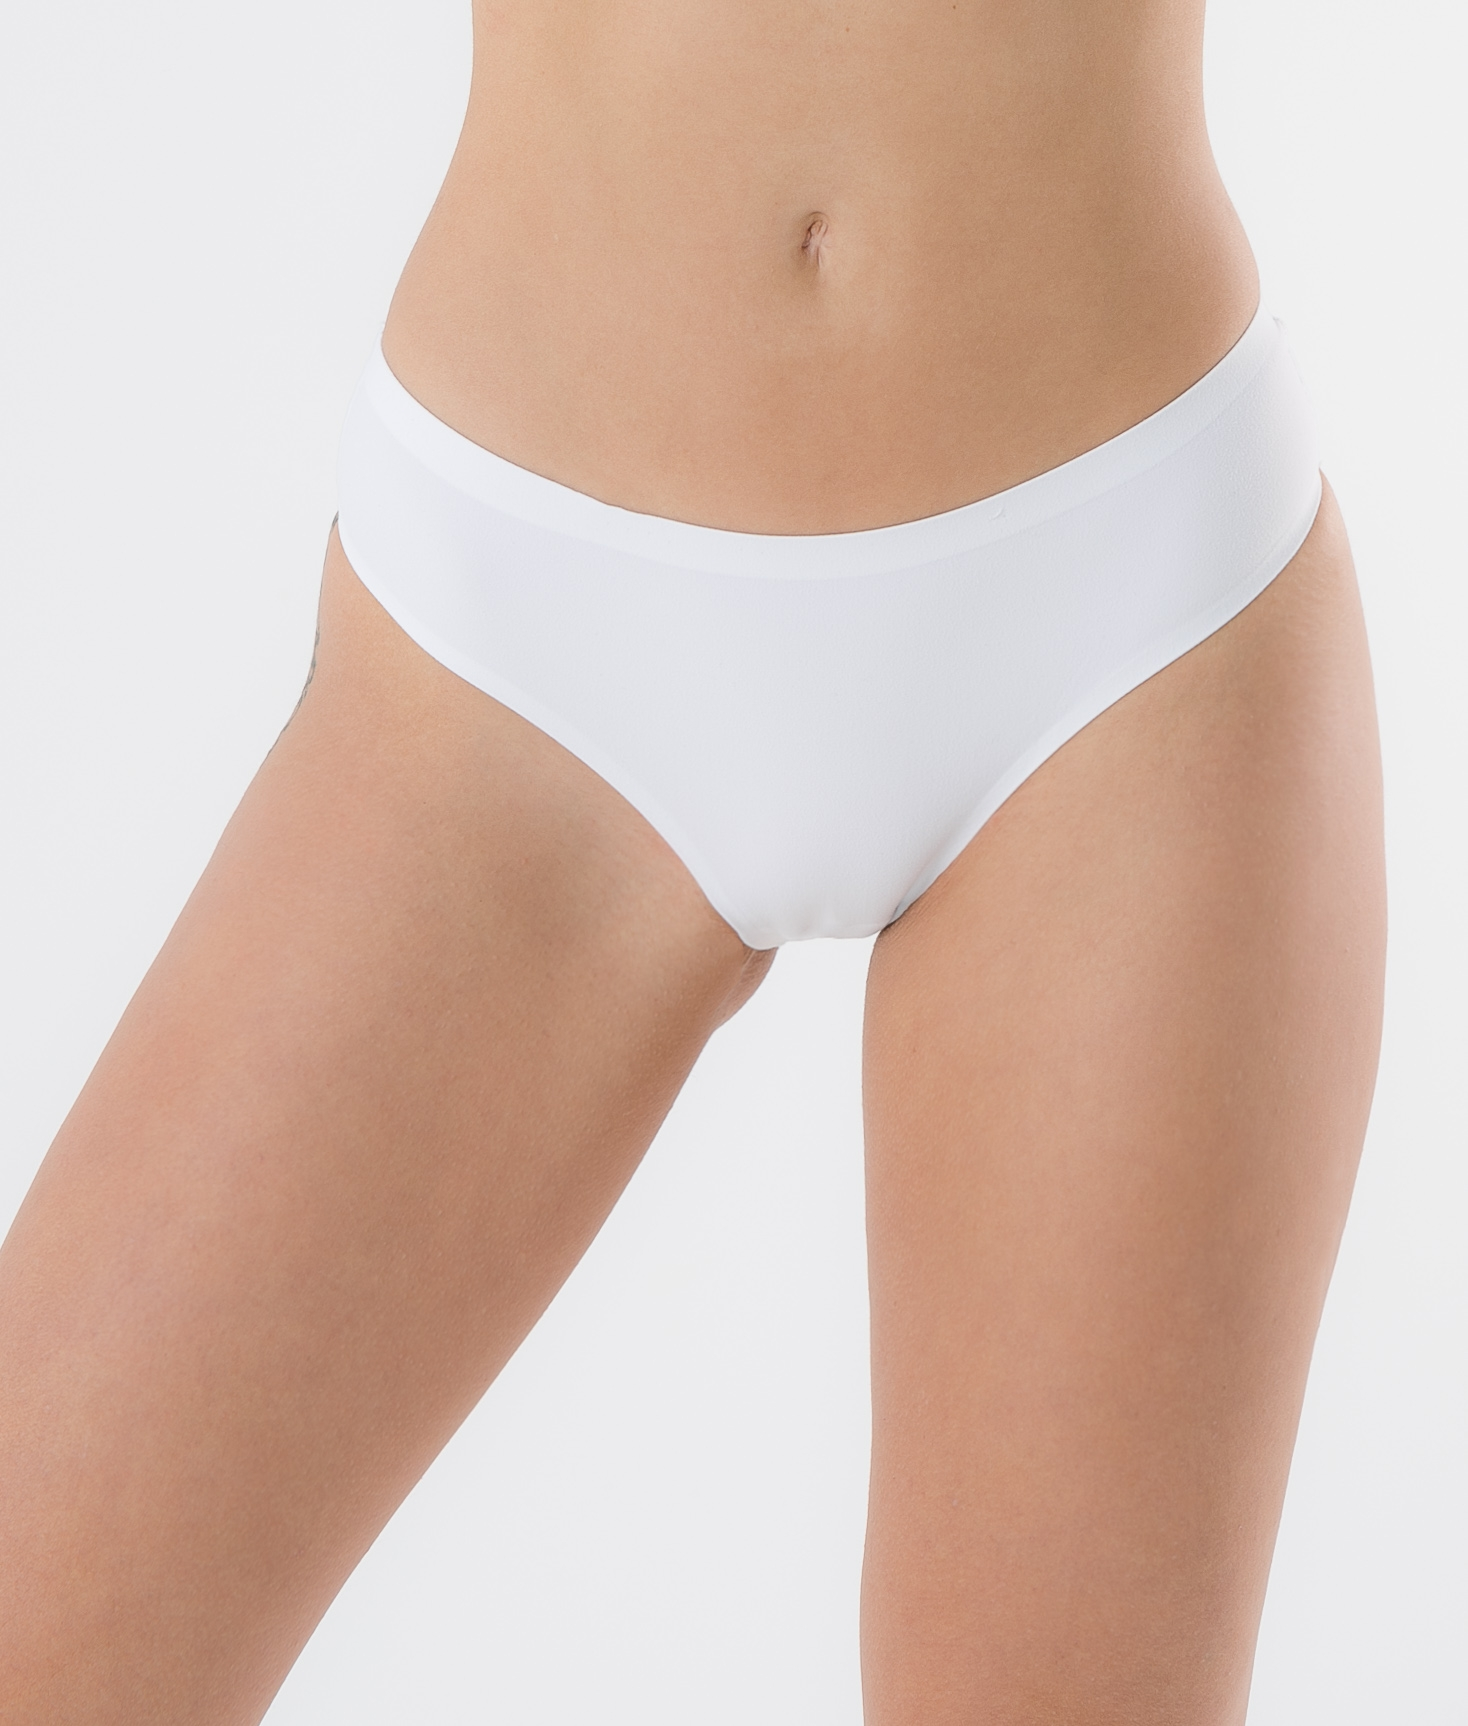 knickers Cospil - White